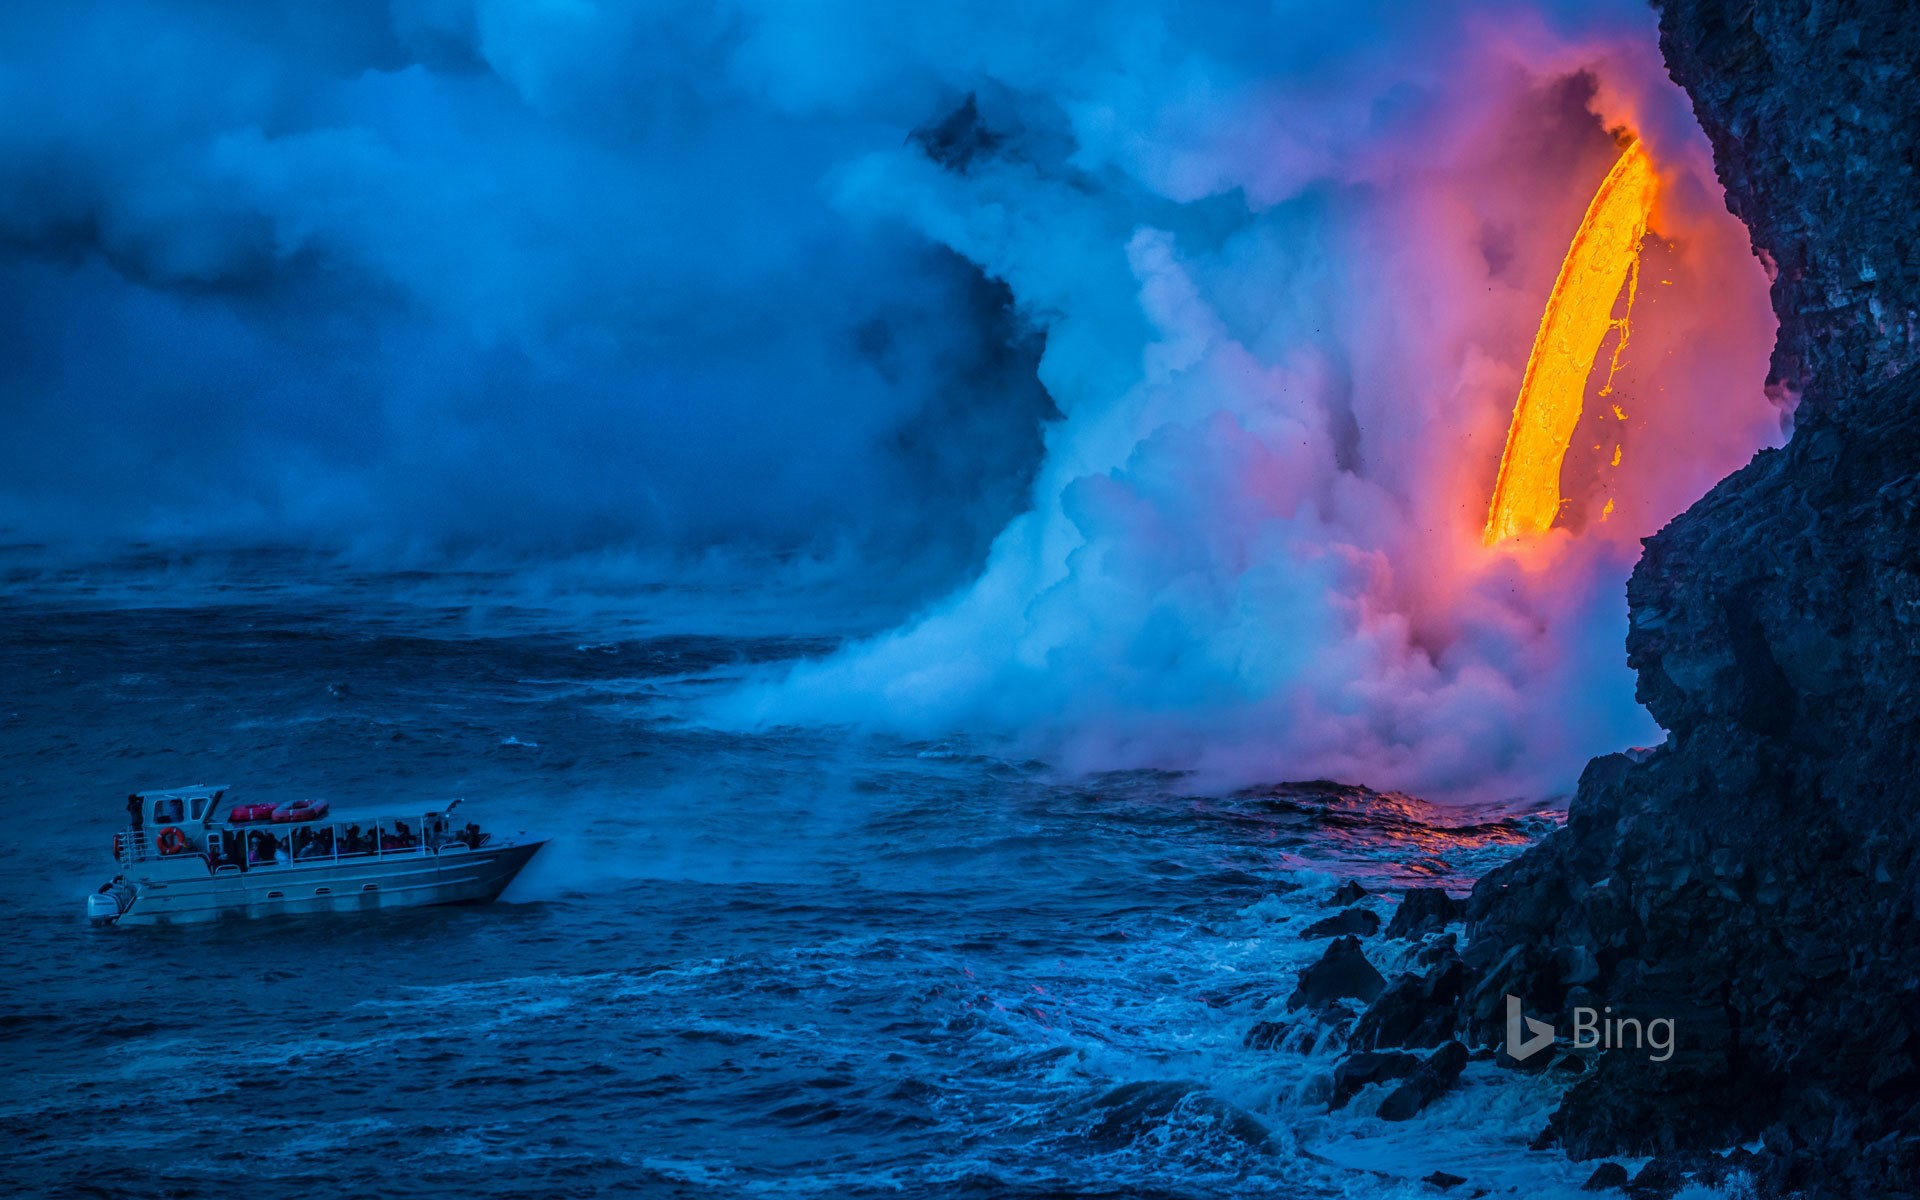 A lava flow hits water to create an explosion as a tourist boat passes, Hawaii Volcanoes National Park, USA